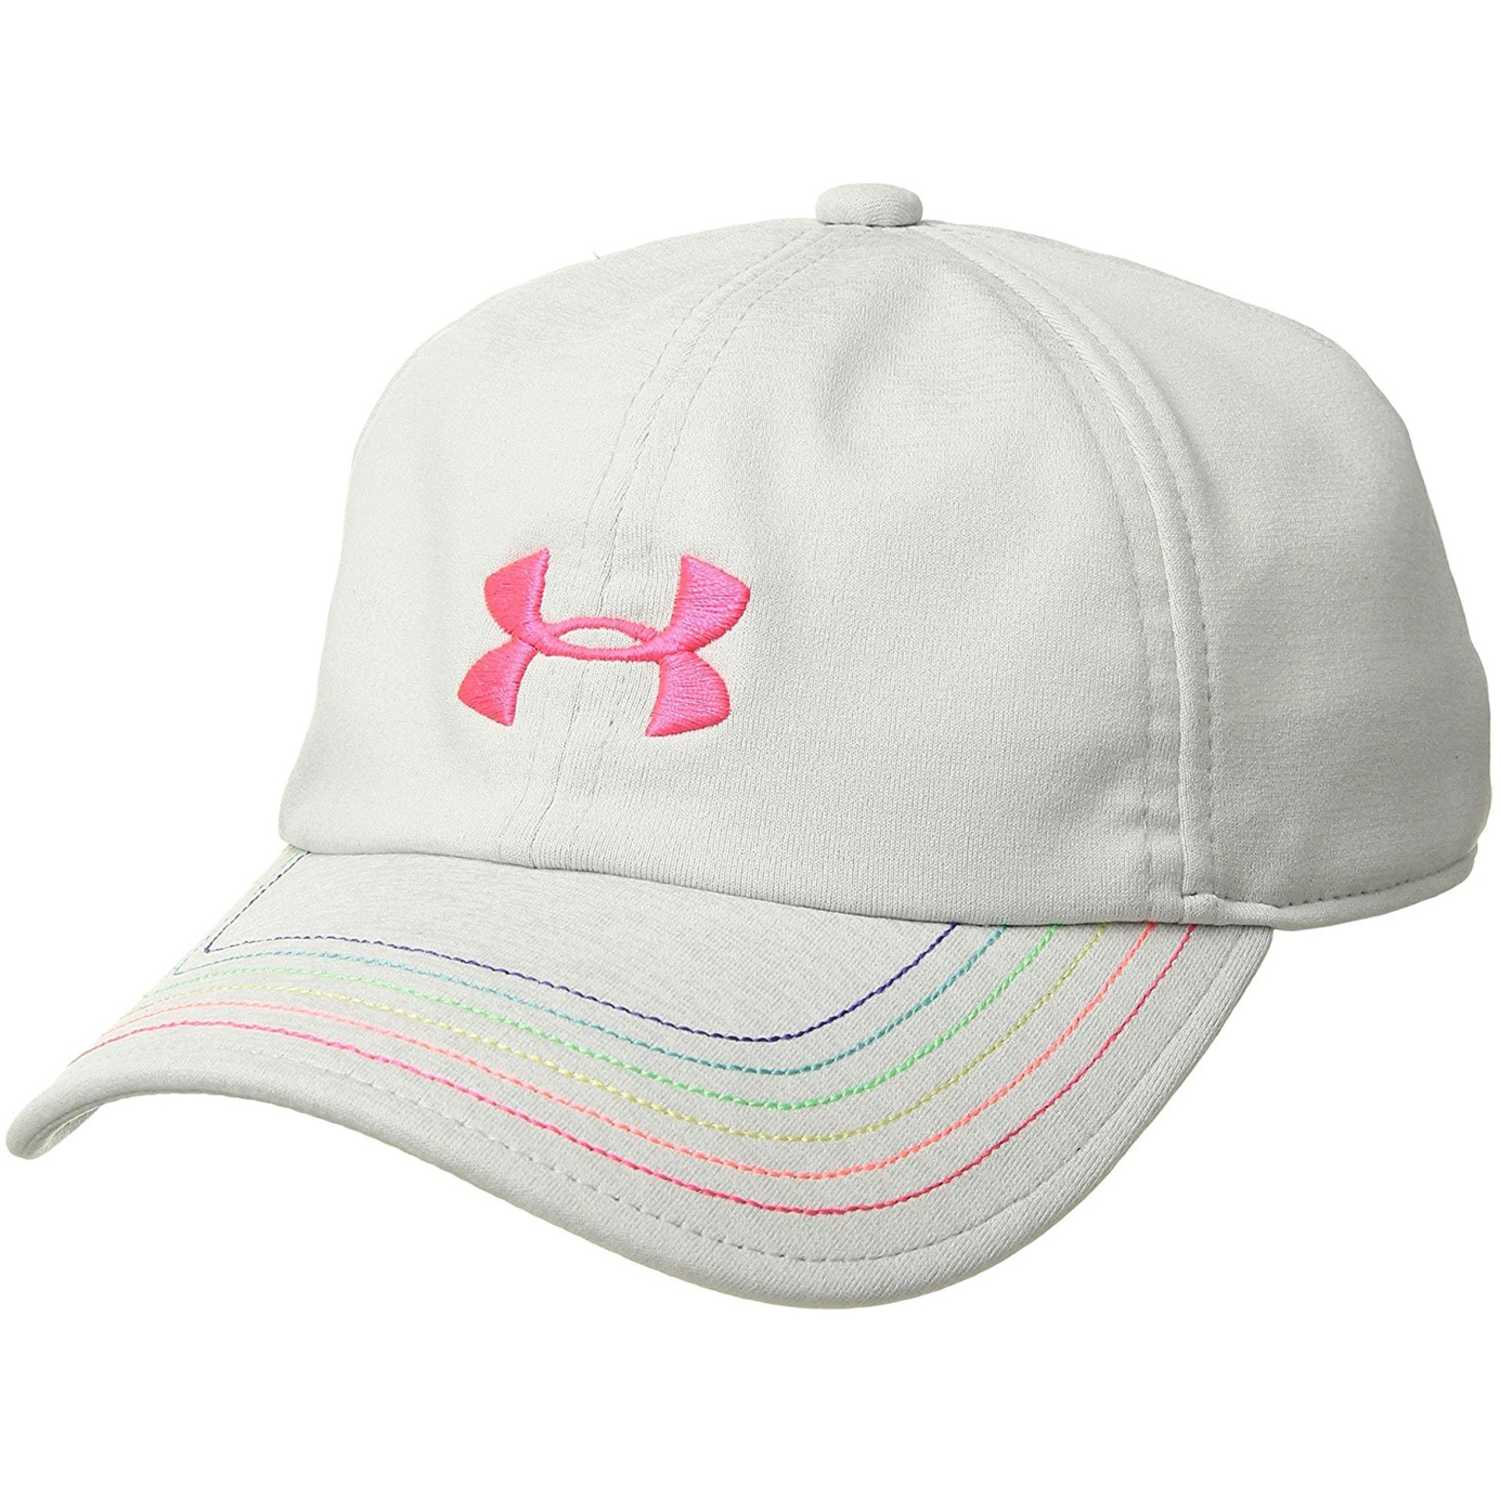 Gorro de Niña Under Armour Varios girls twisted renegade cap ... f0843b3e499